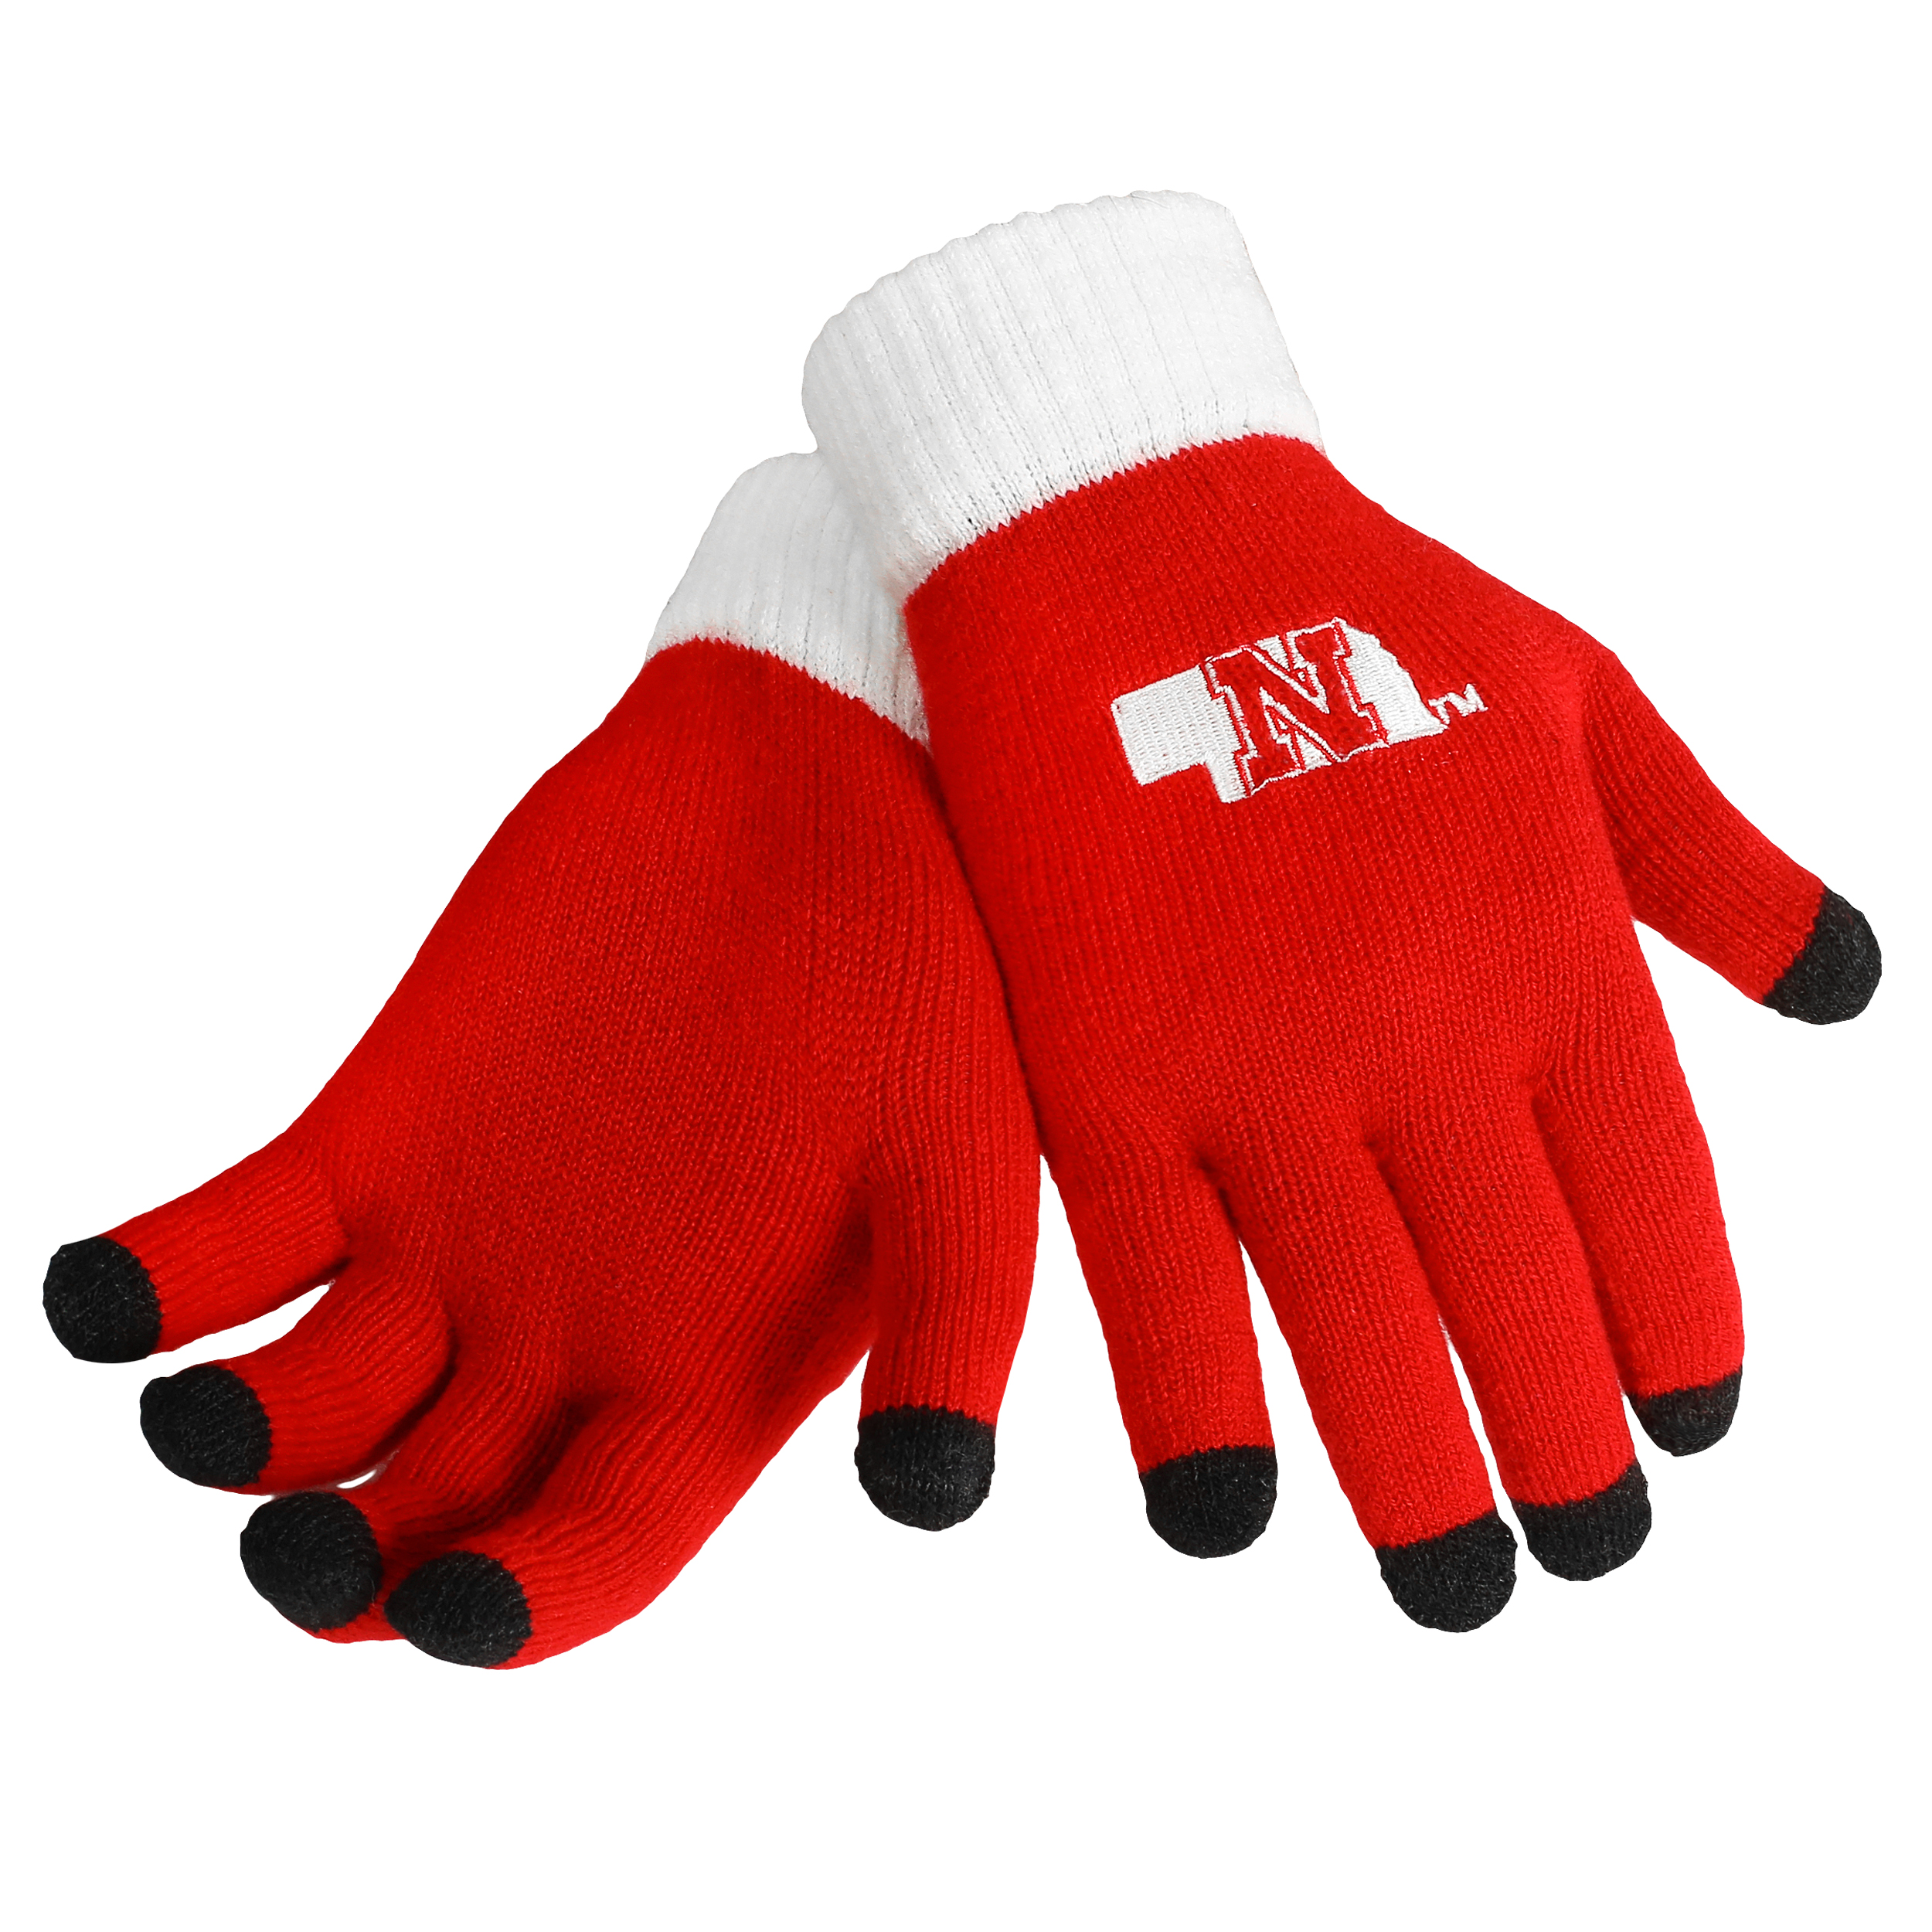 Nebraska Cornhuskers Official NCAA Glove Solid Outdoor Winter Stretch Knit by Forever Collectibles 262879 by Forever Collectibles